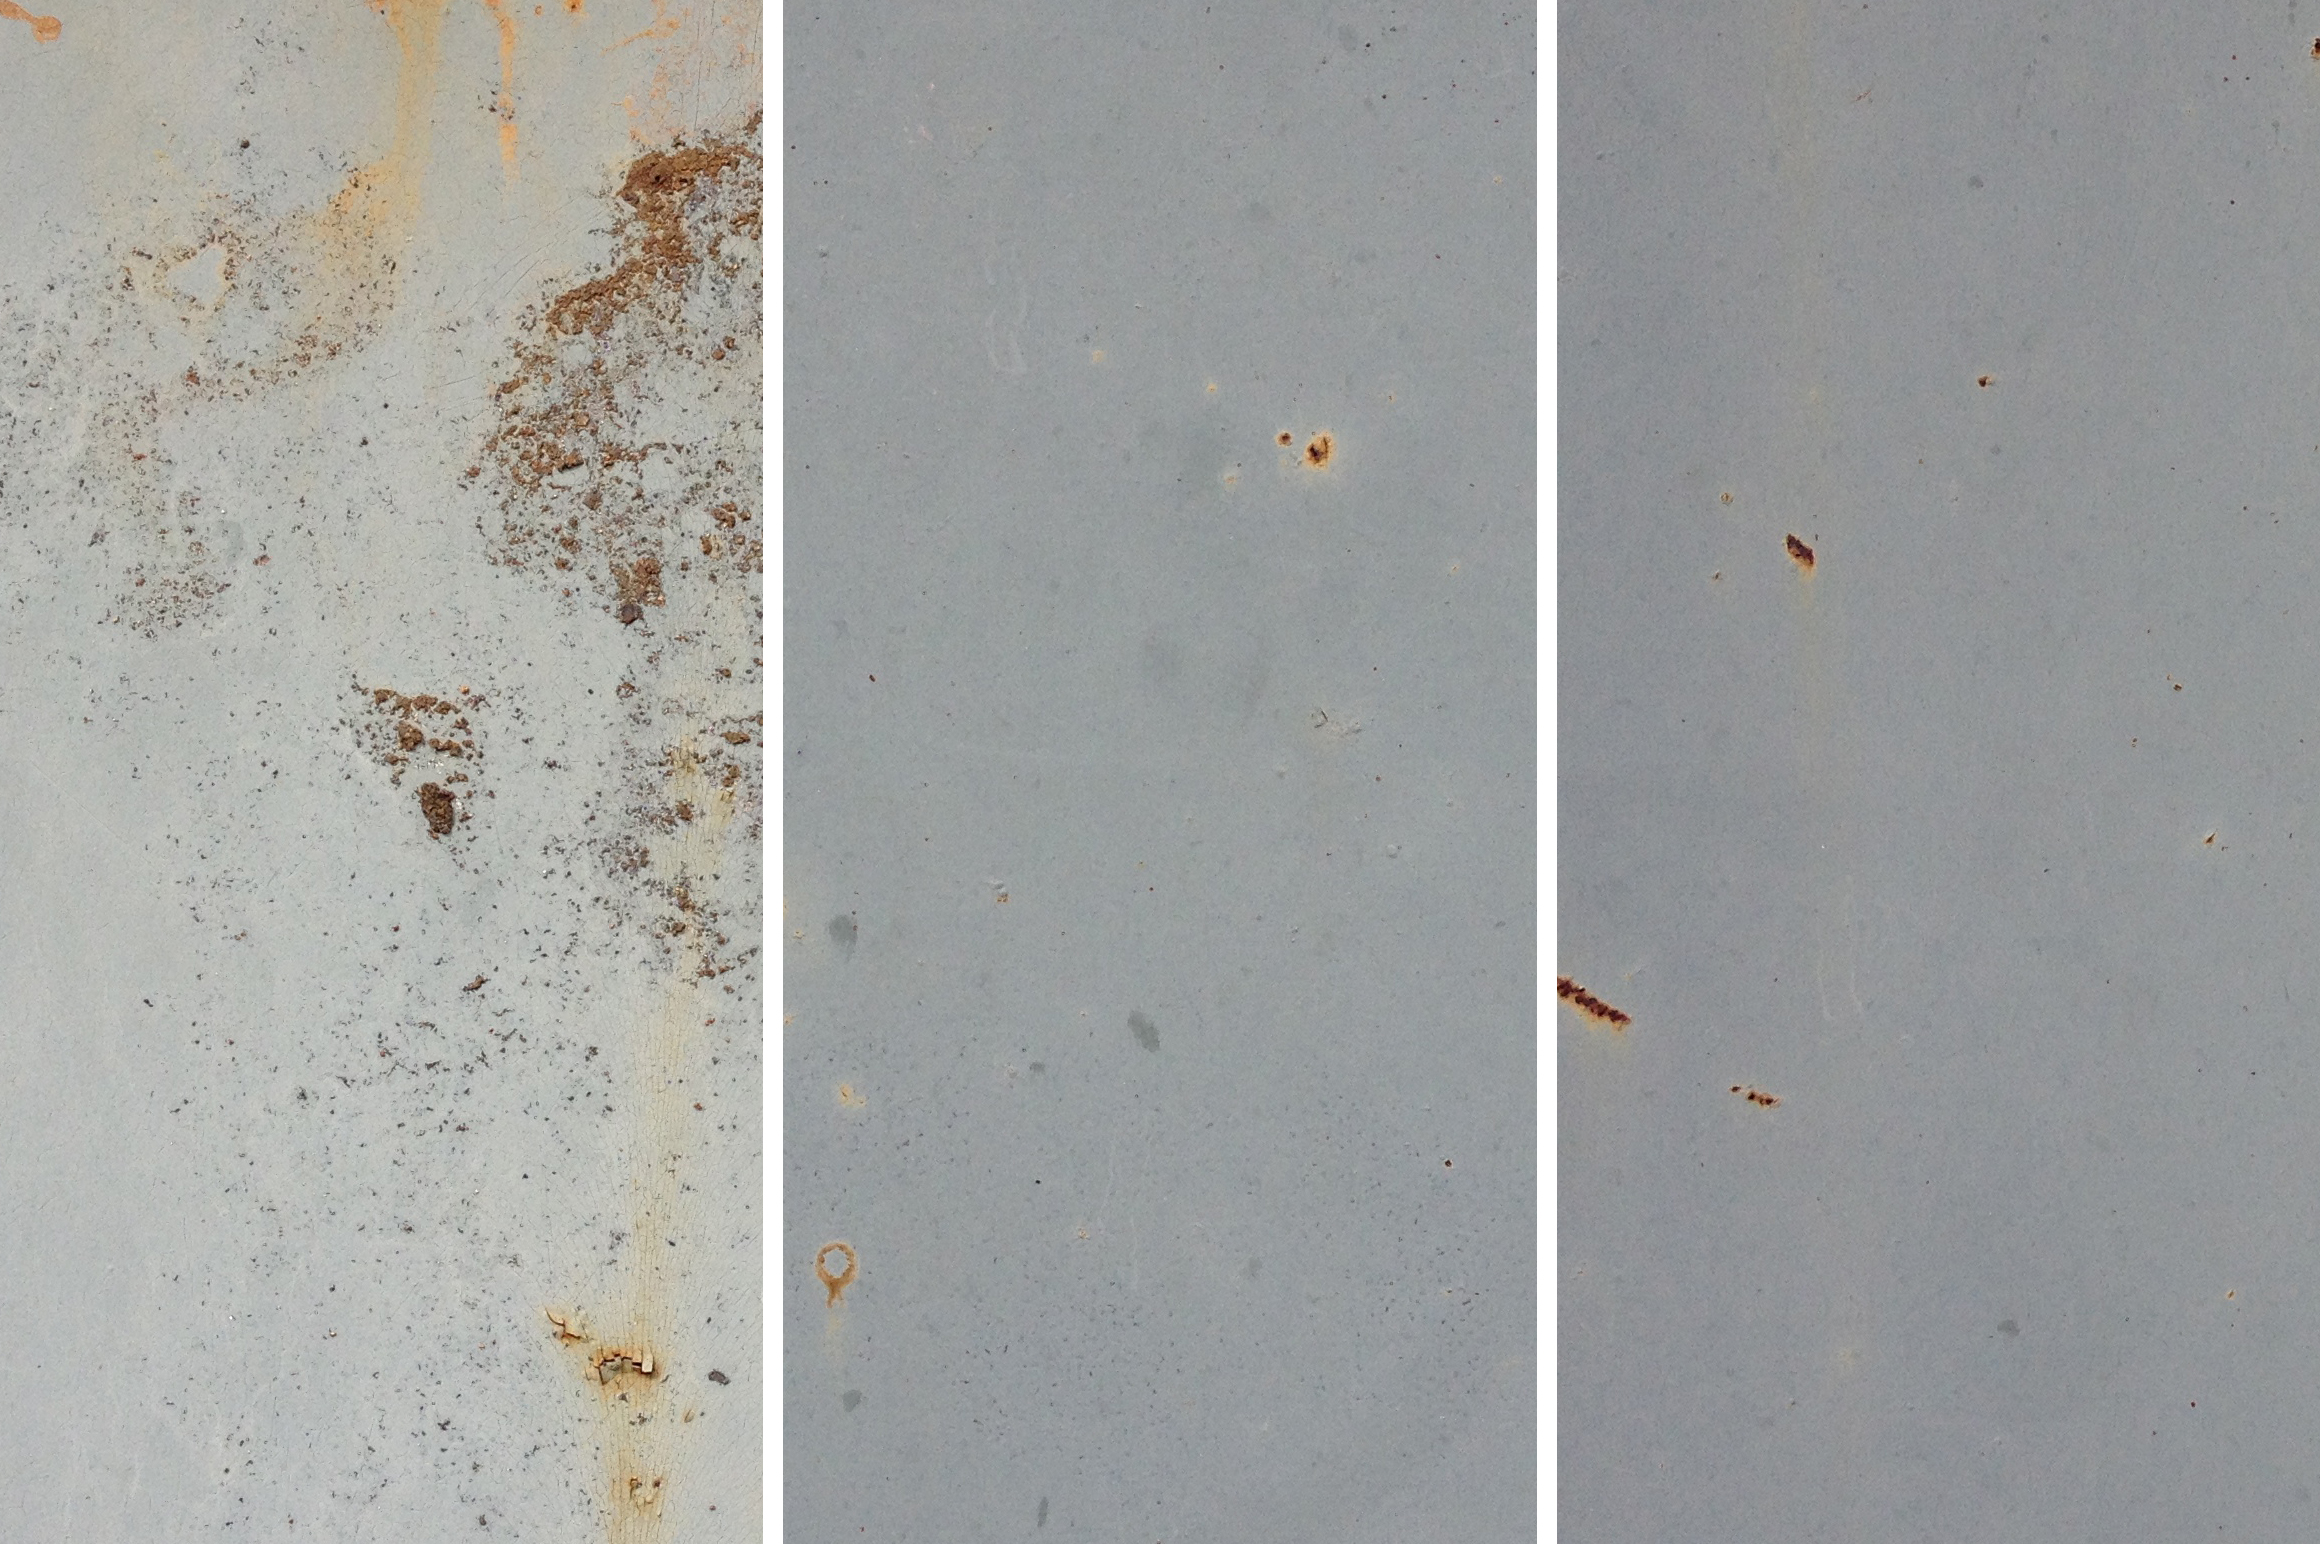 Metal Dumpster Texture Pack Graphic Textures By theshopdesignstudio - Image 3